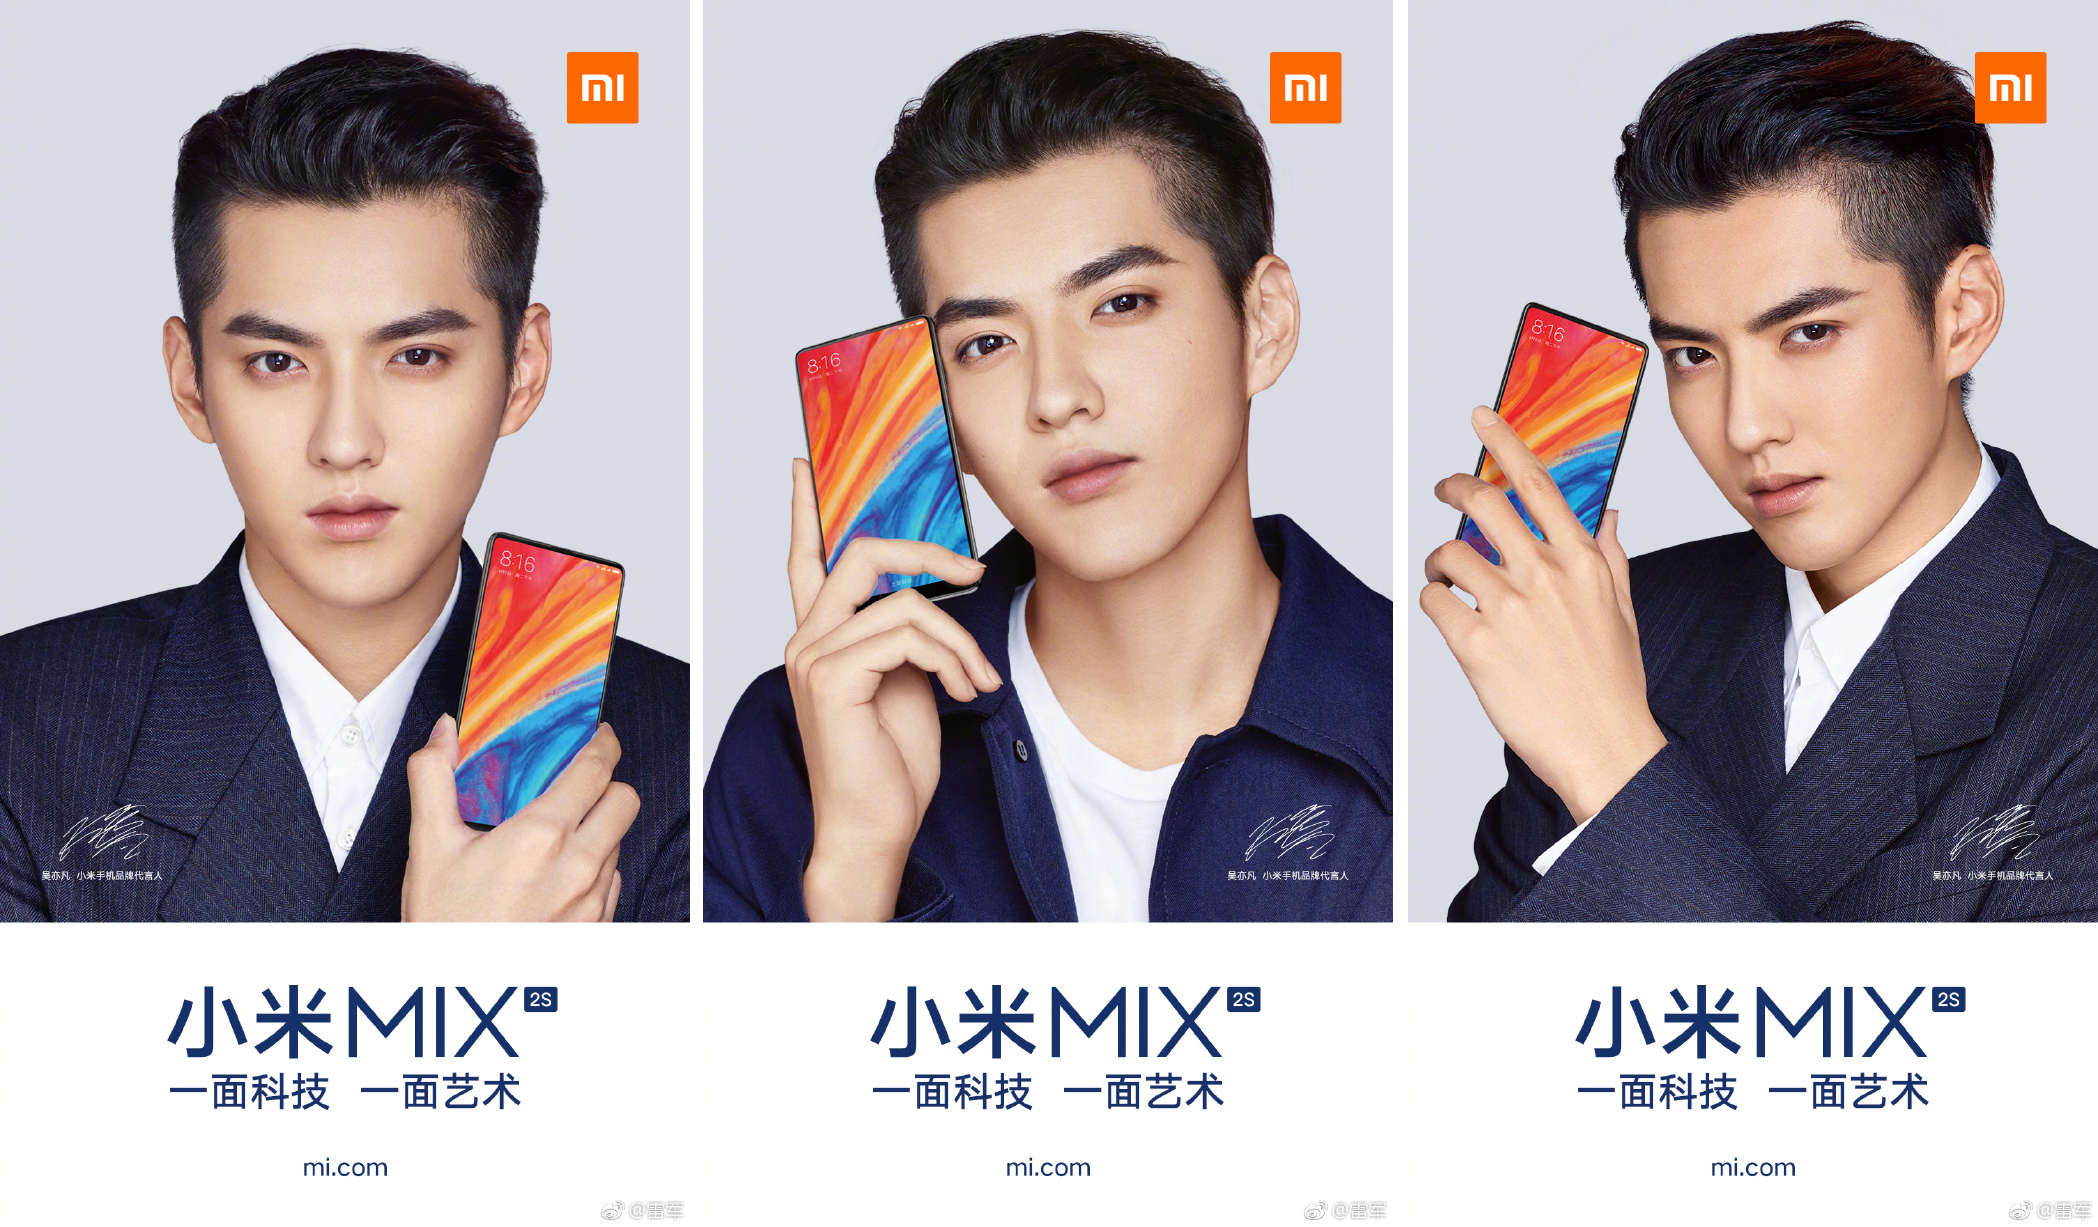 android-authority-xiaomi-mi-mix-2s-366